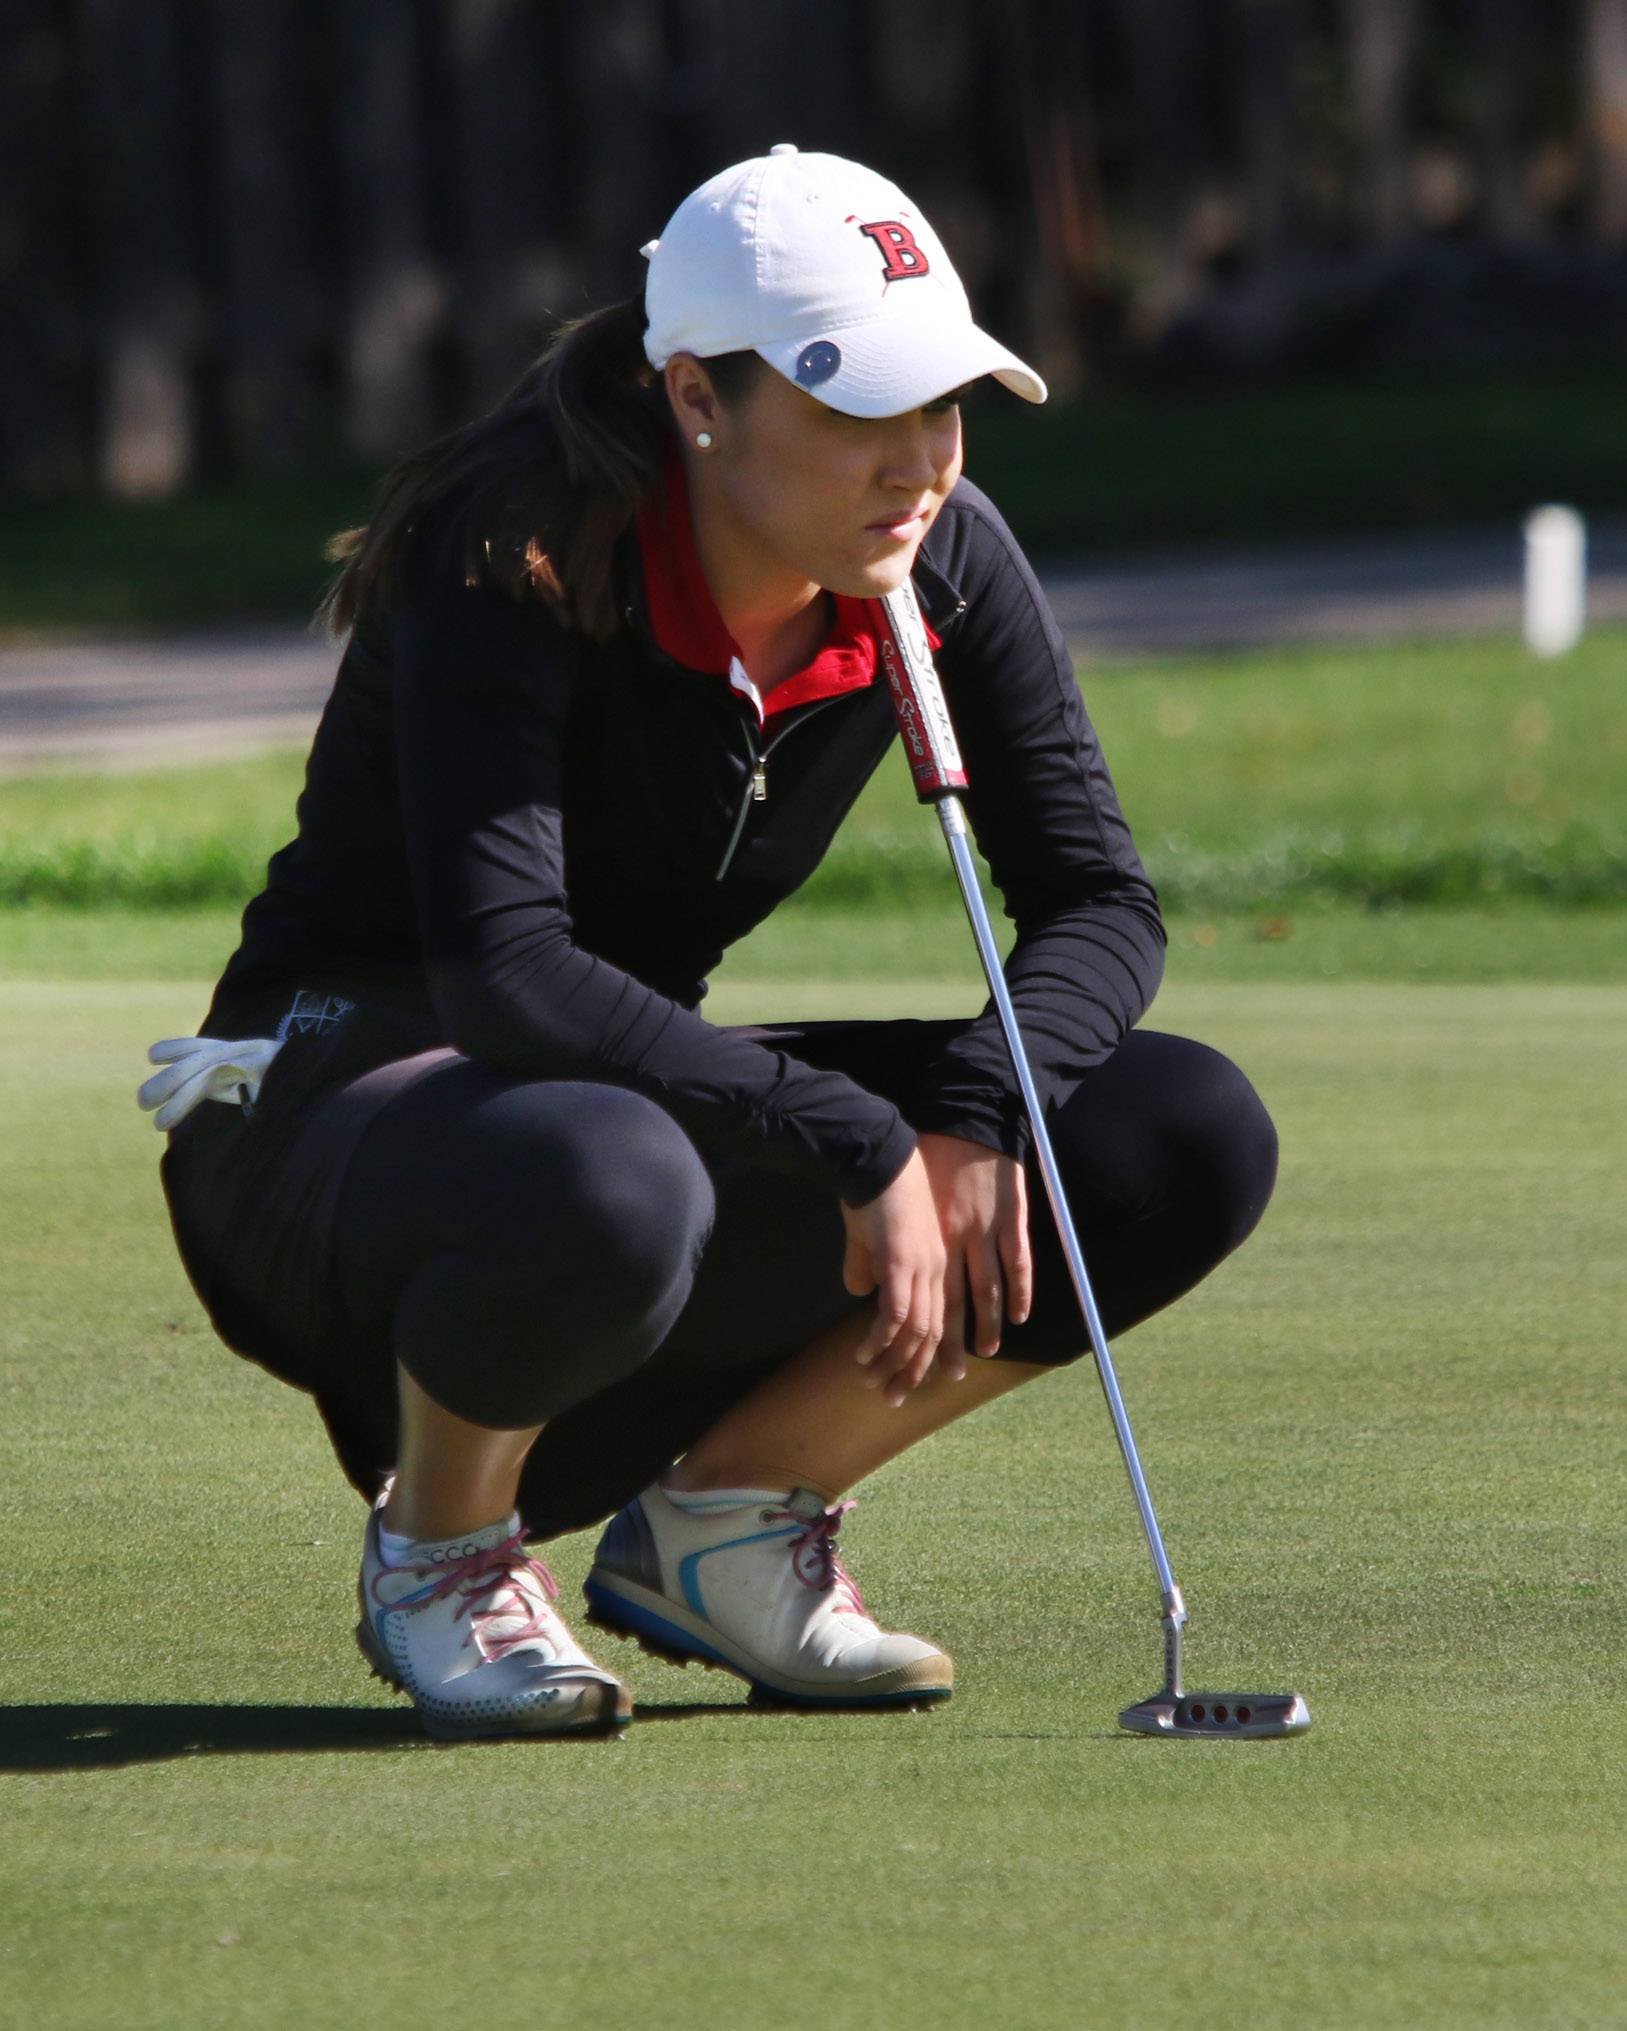 Barrington's Nicole Ciskowski, here lining up a putt during sectional play last season, had the low score in the state-qualifying tournament hosted by Barrington on Monday.